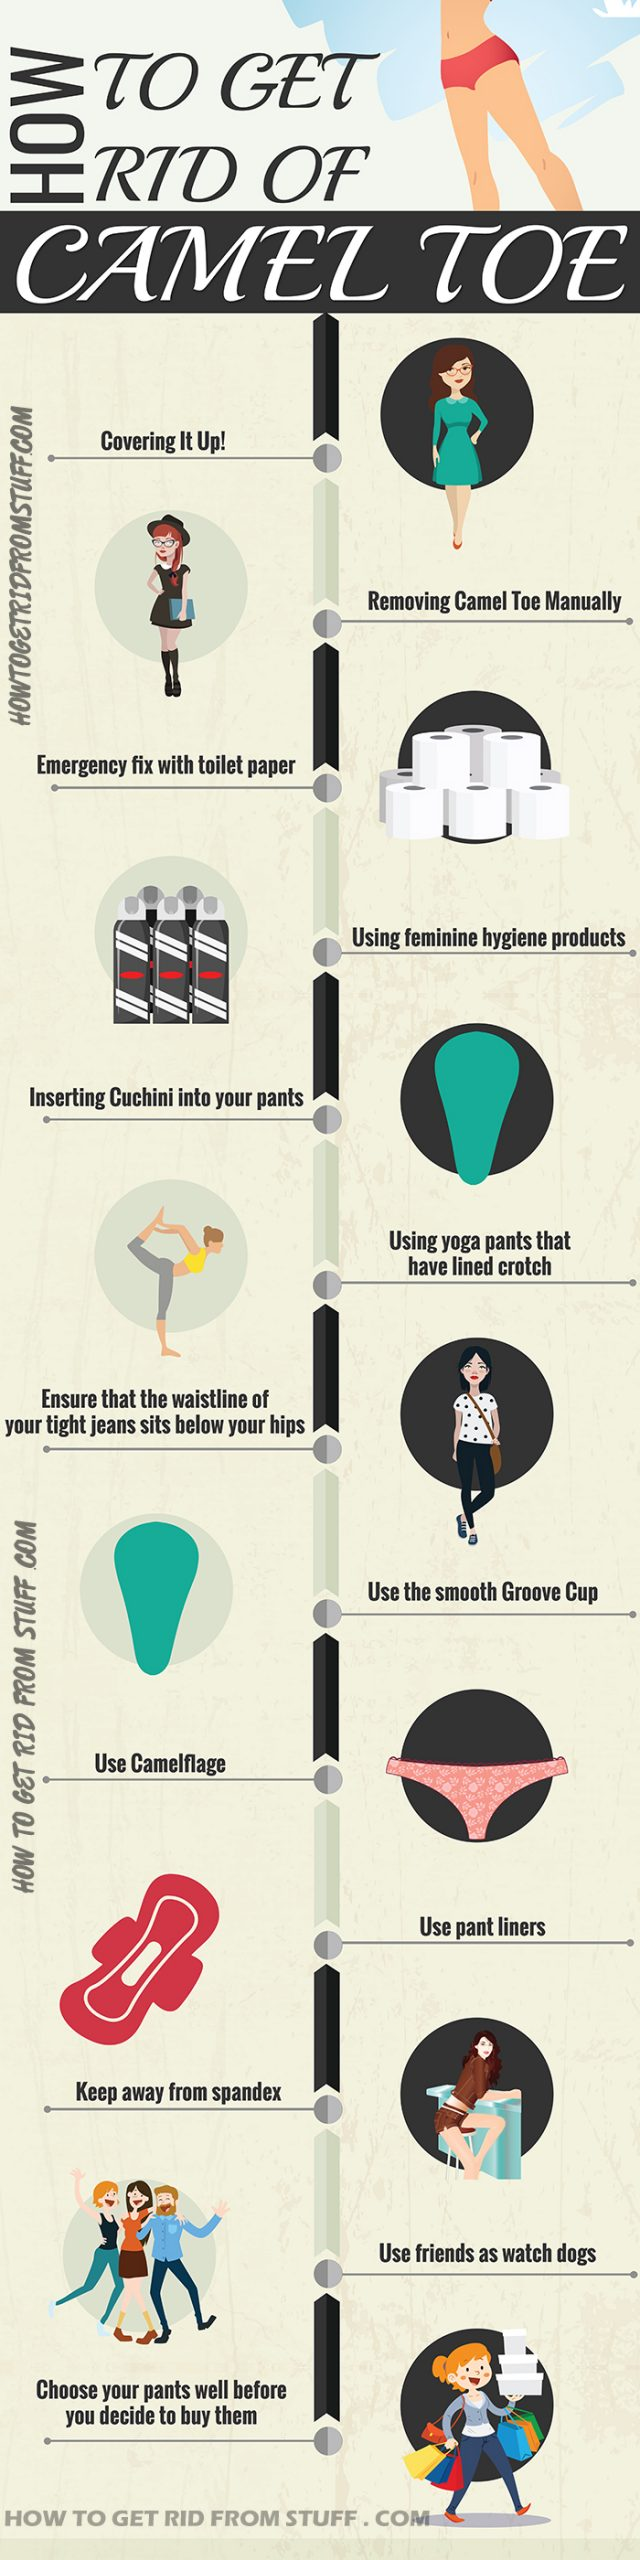 how to get rid of camel toe infographic